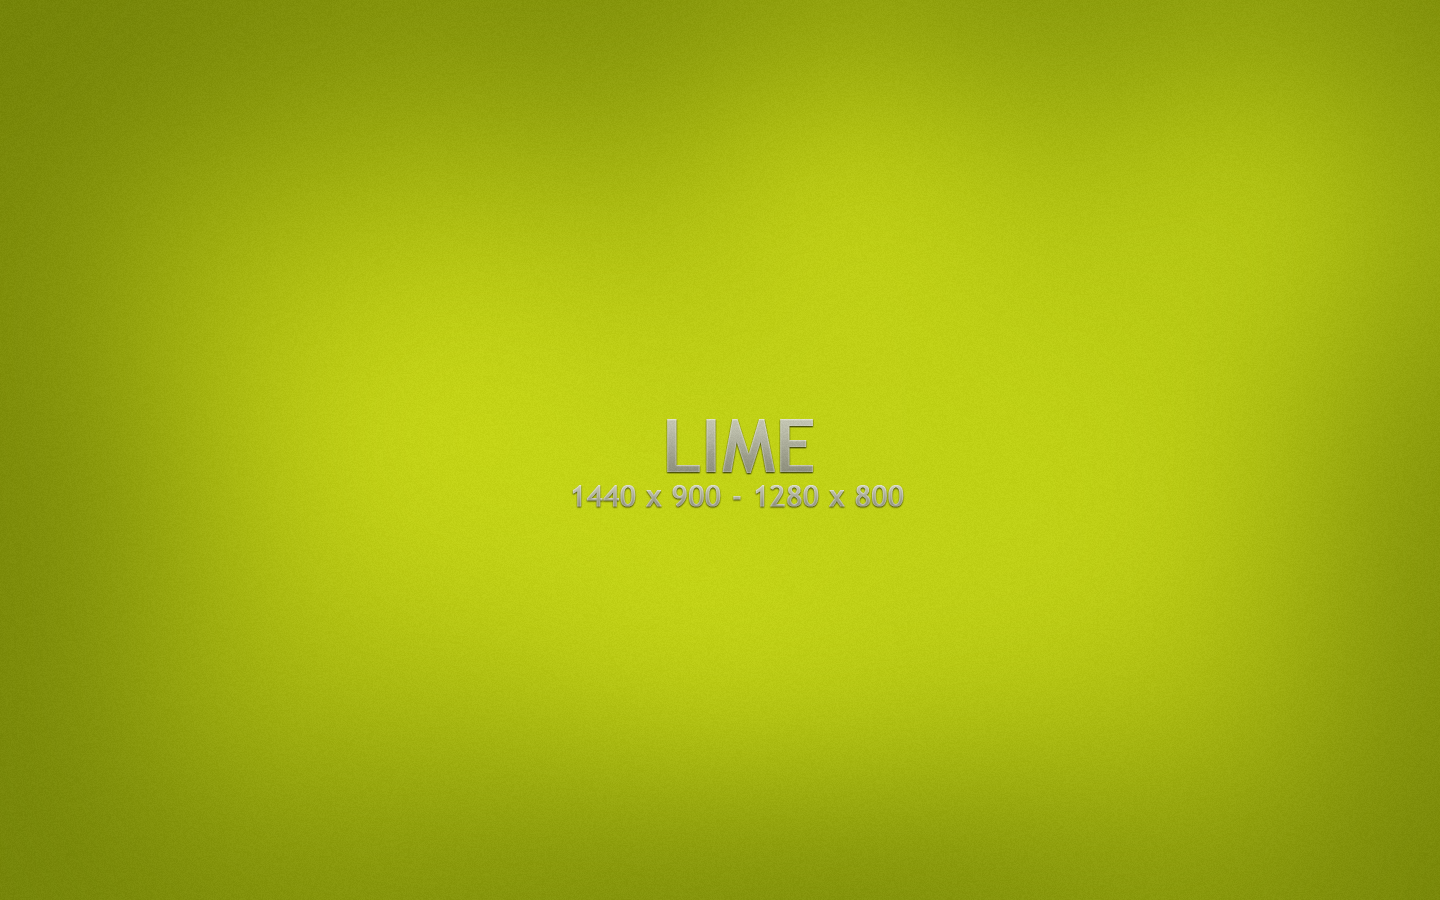 Pictures of Lime HD, 1440x900 px, 01.22.15